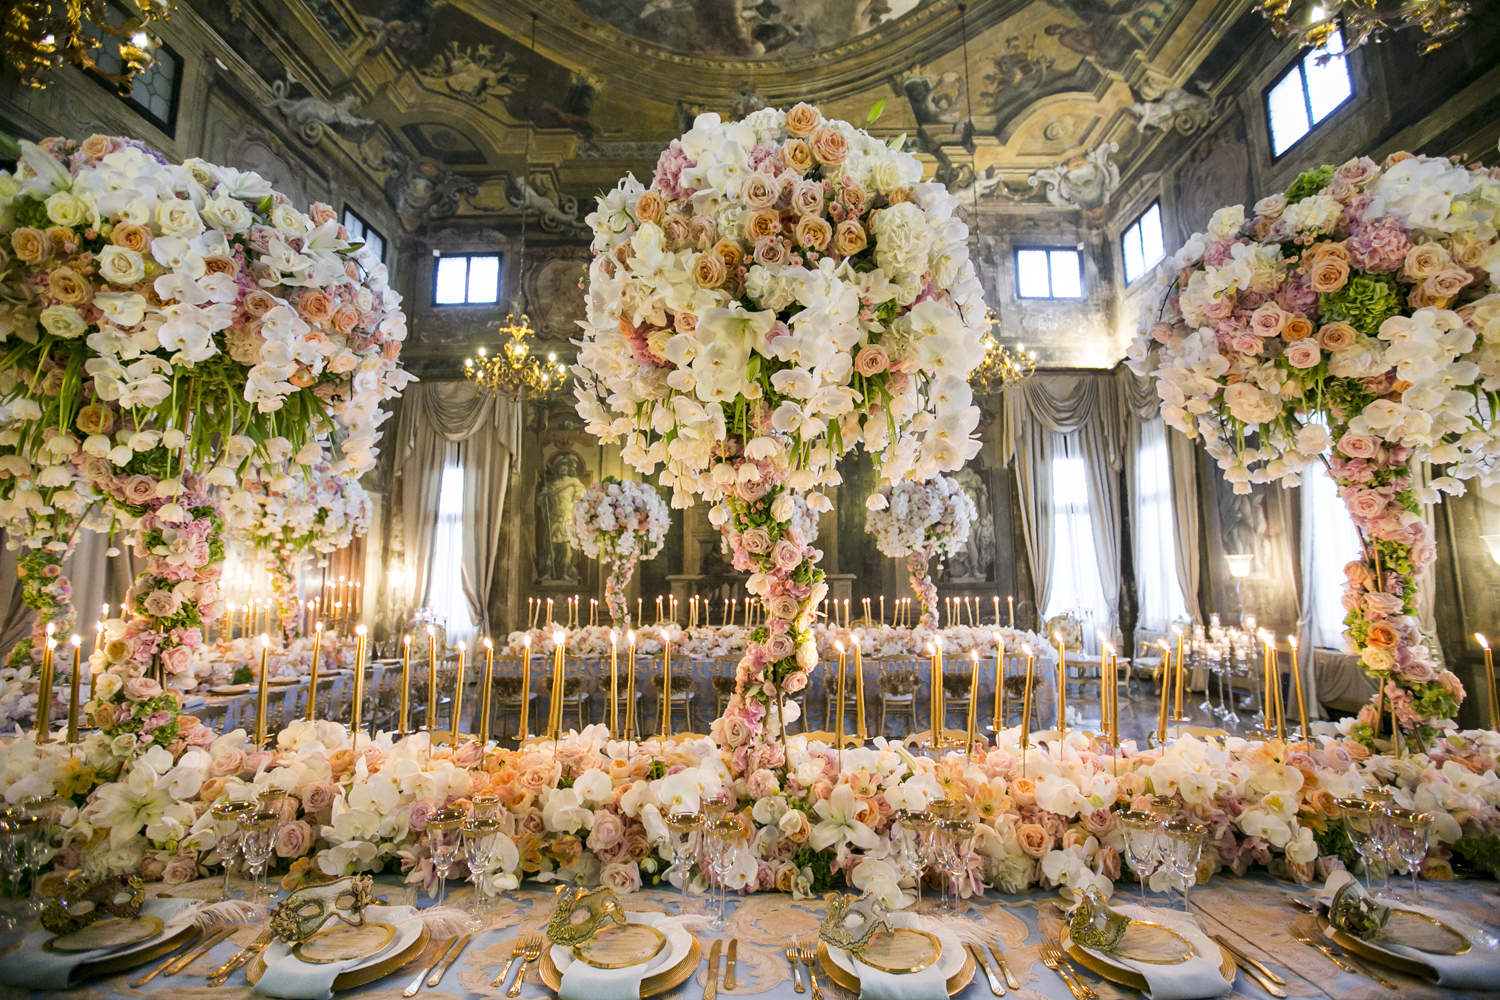 Luxury Life Design Best Wedding Locations In The World: ITALY INSPIRES: ITALIAN INSPIRATION FOR LUXURY WEDDING